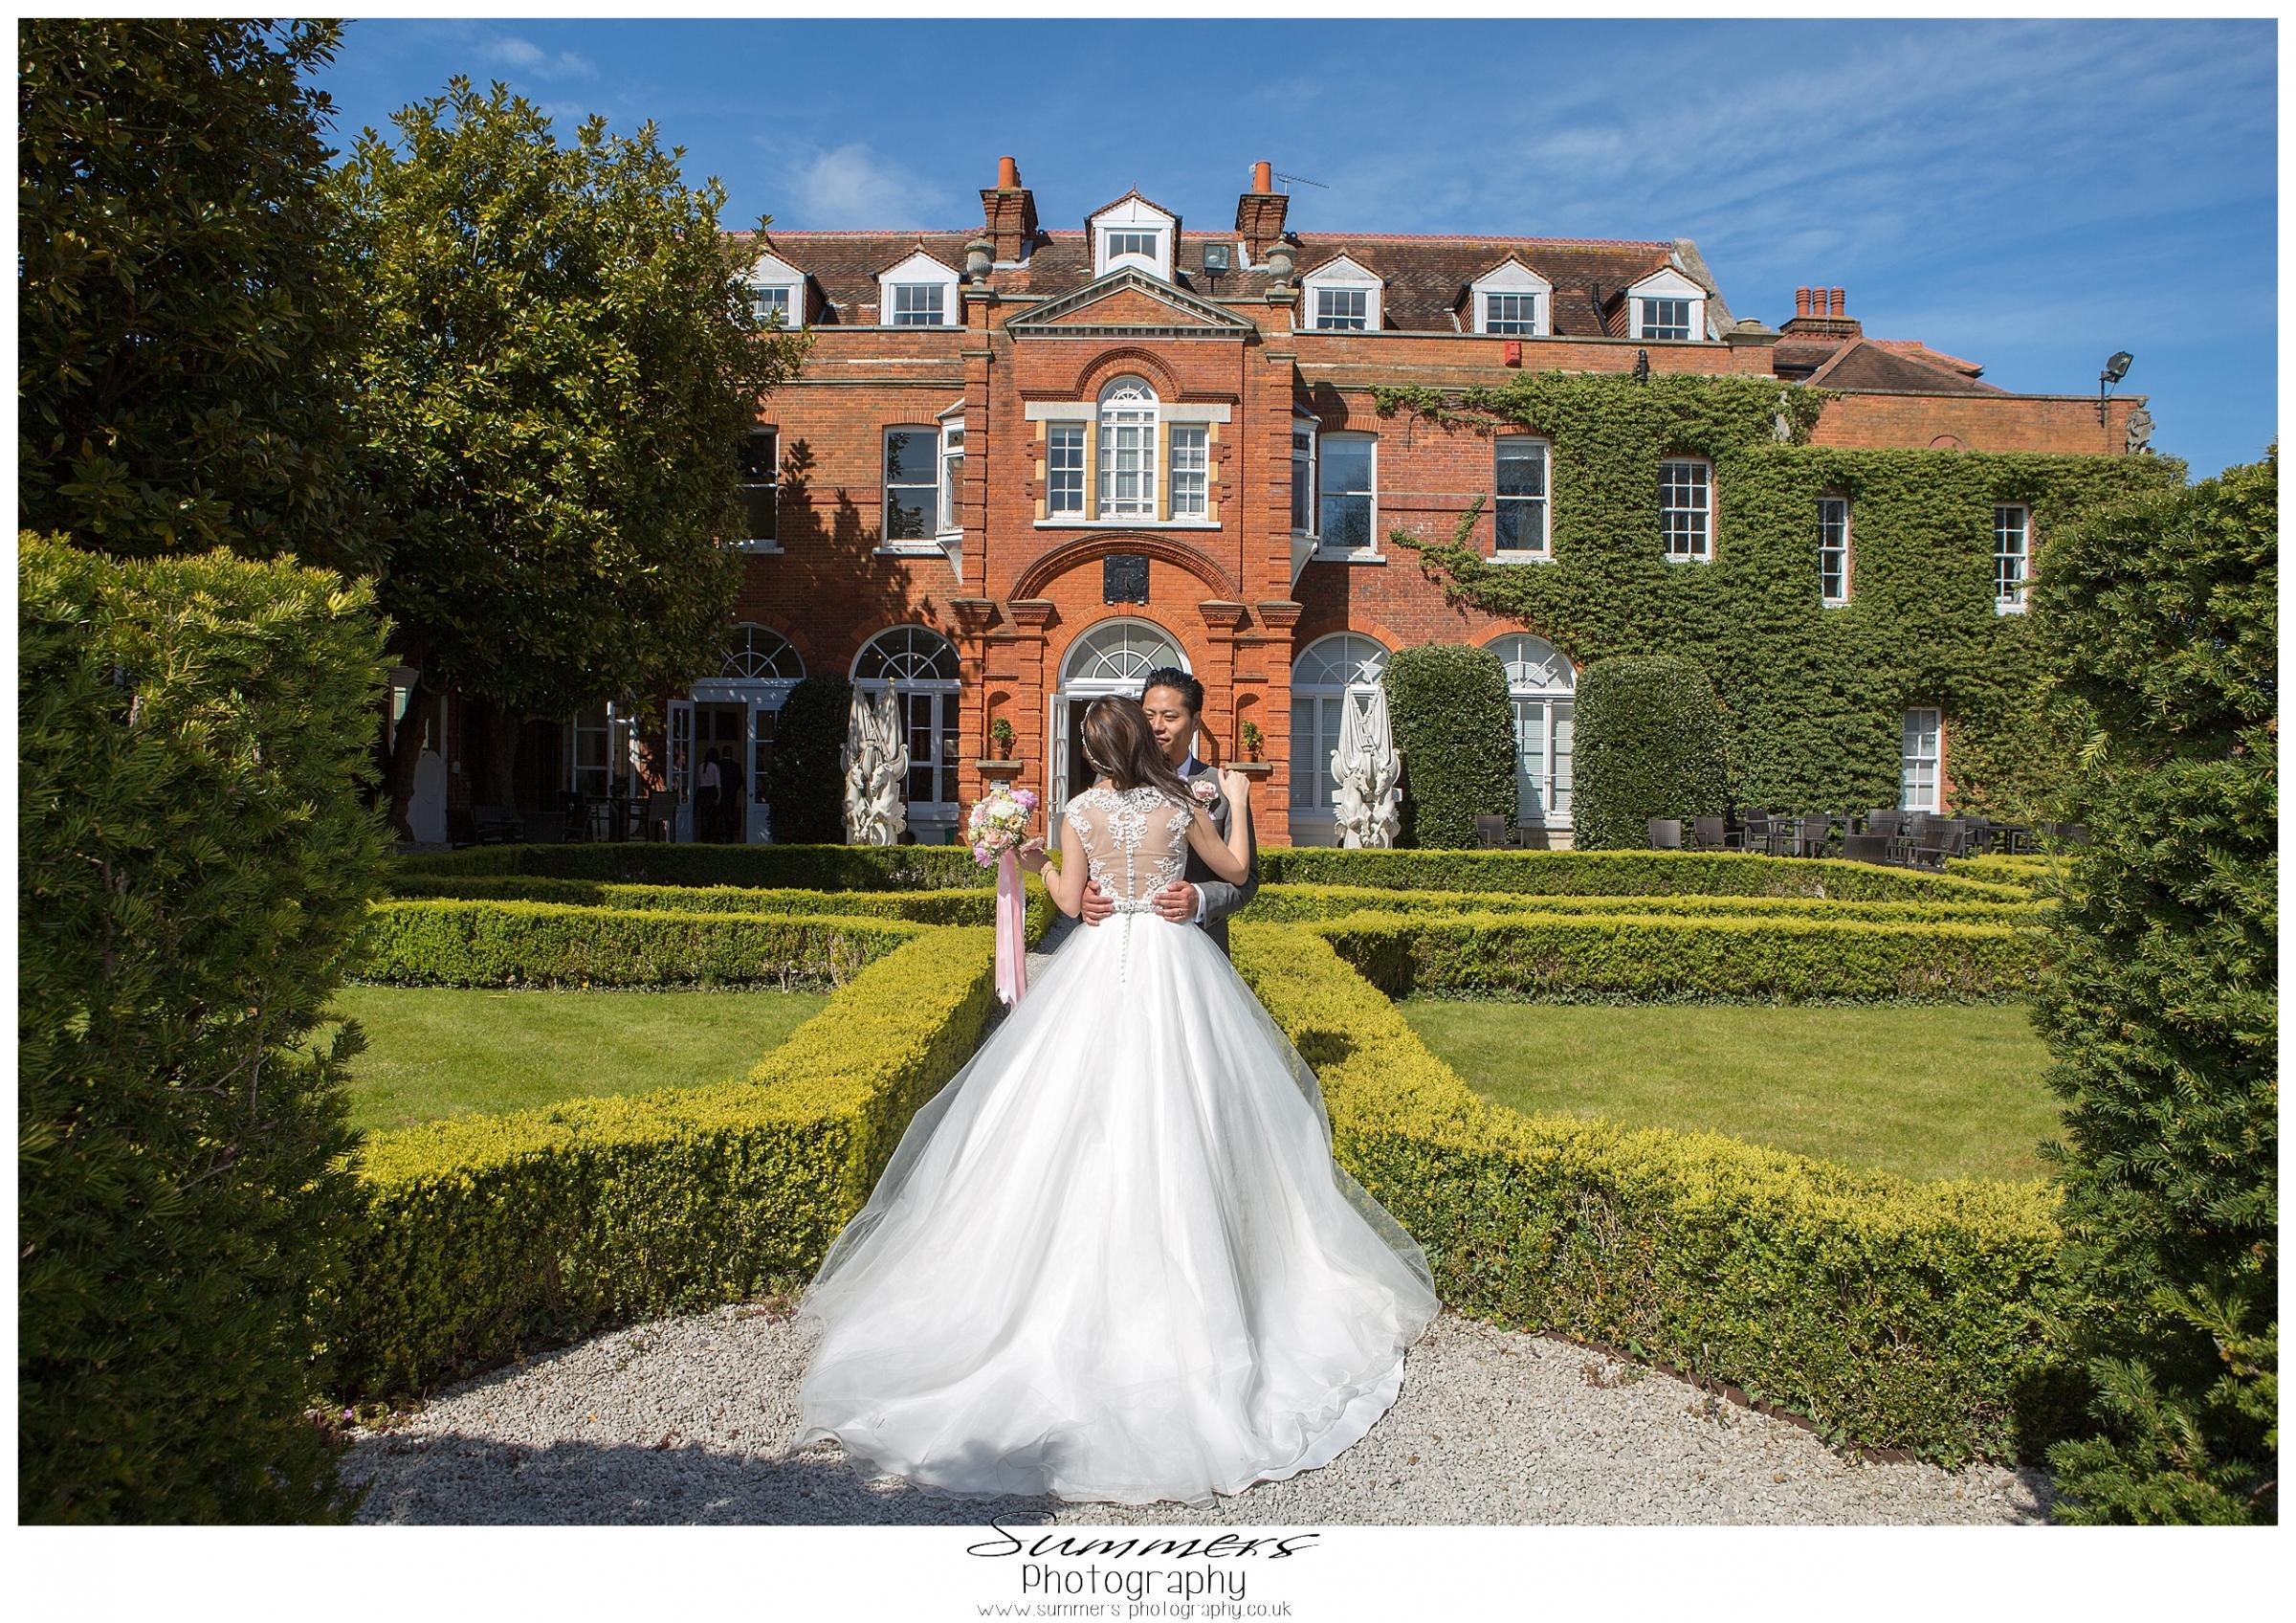 Shepperton Studios Wedding Fair